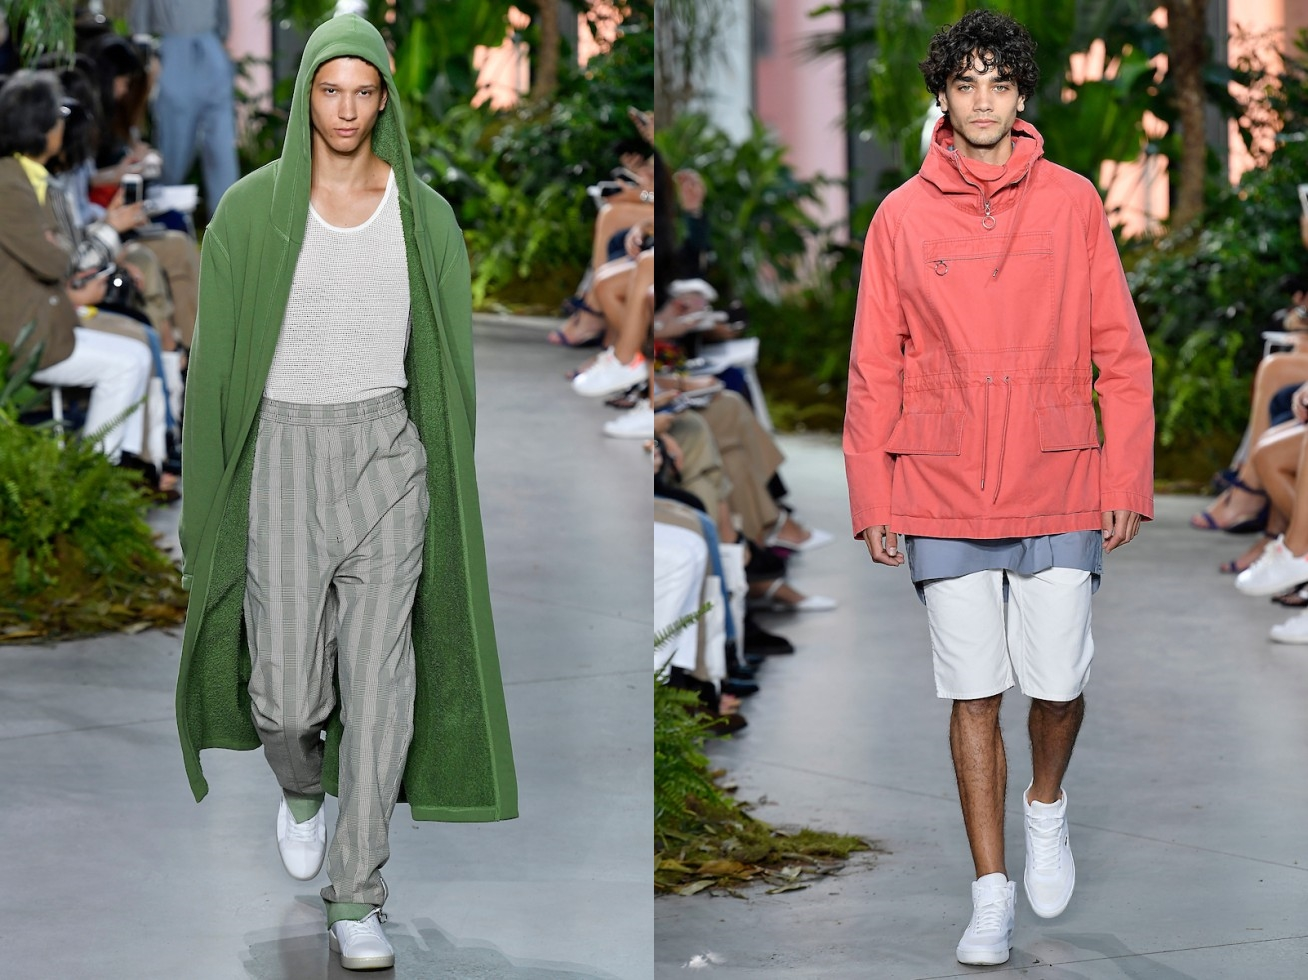 lacoste-summer-2017-collection-menswear-runway-desfile-colecao-moda-masculina-alex-cursino-mens-moda-sem-censura-blogger-dicas-de-moda-2-tile